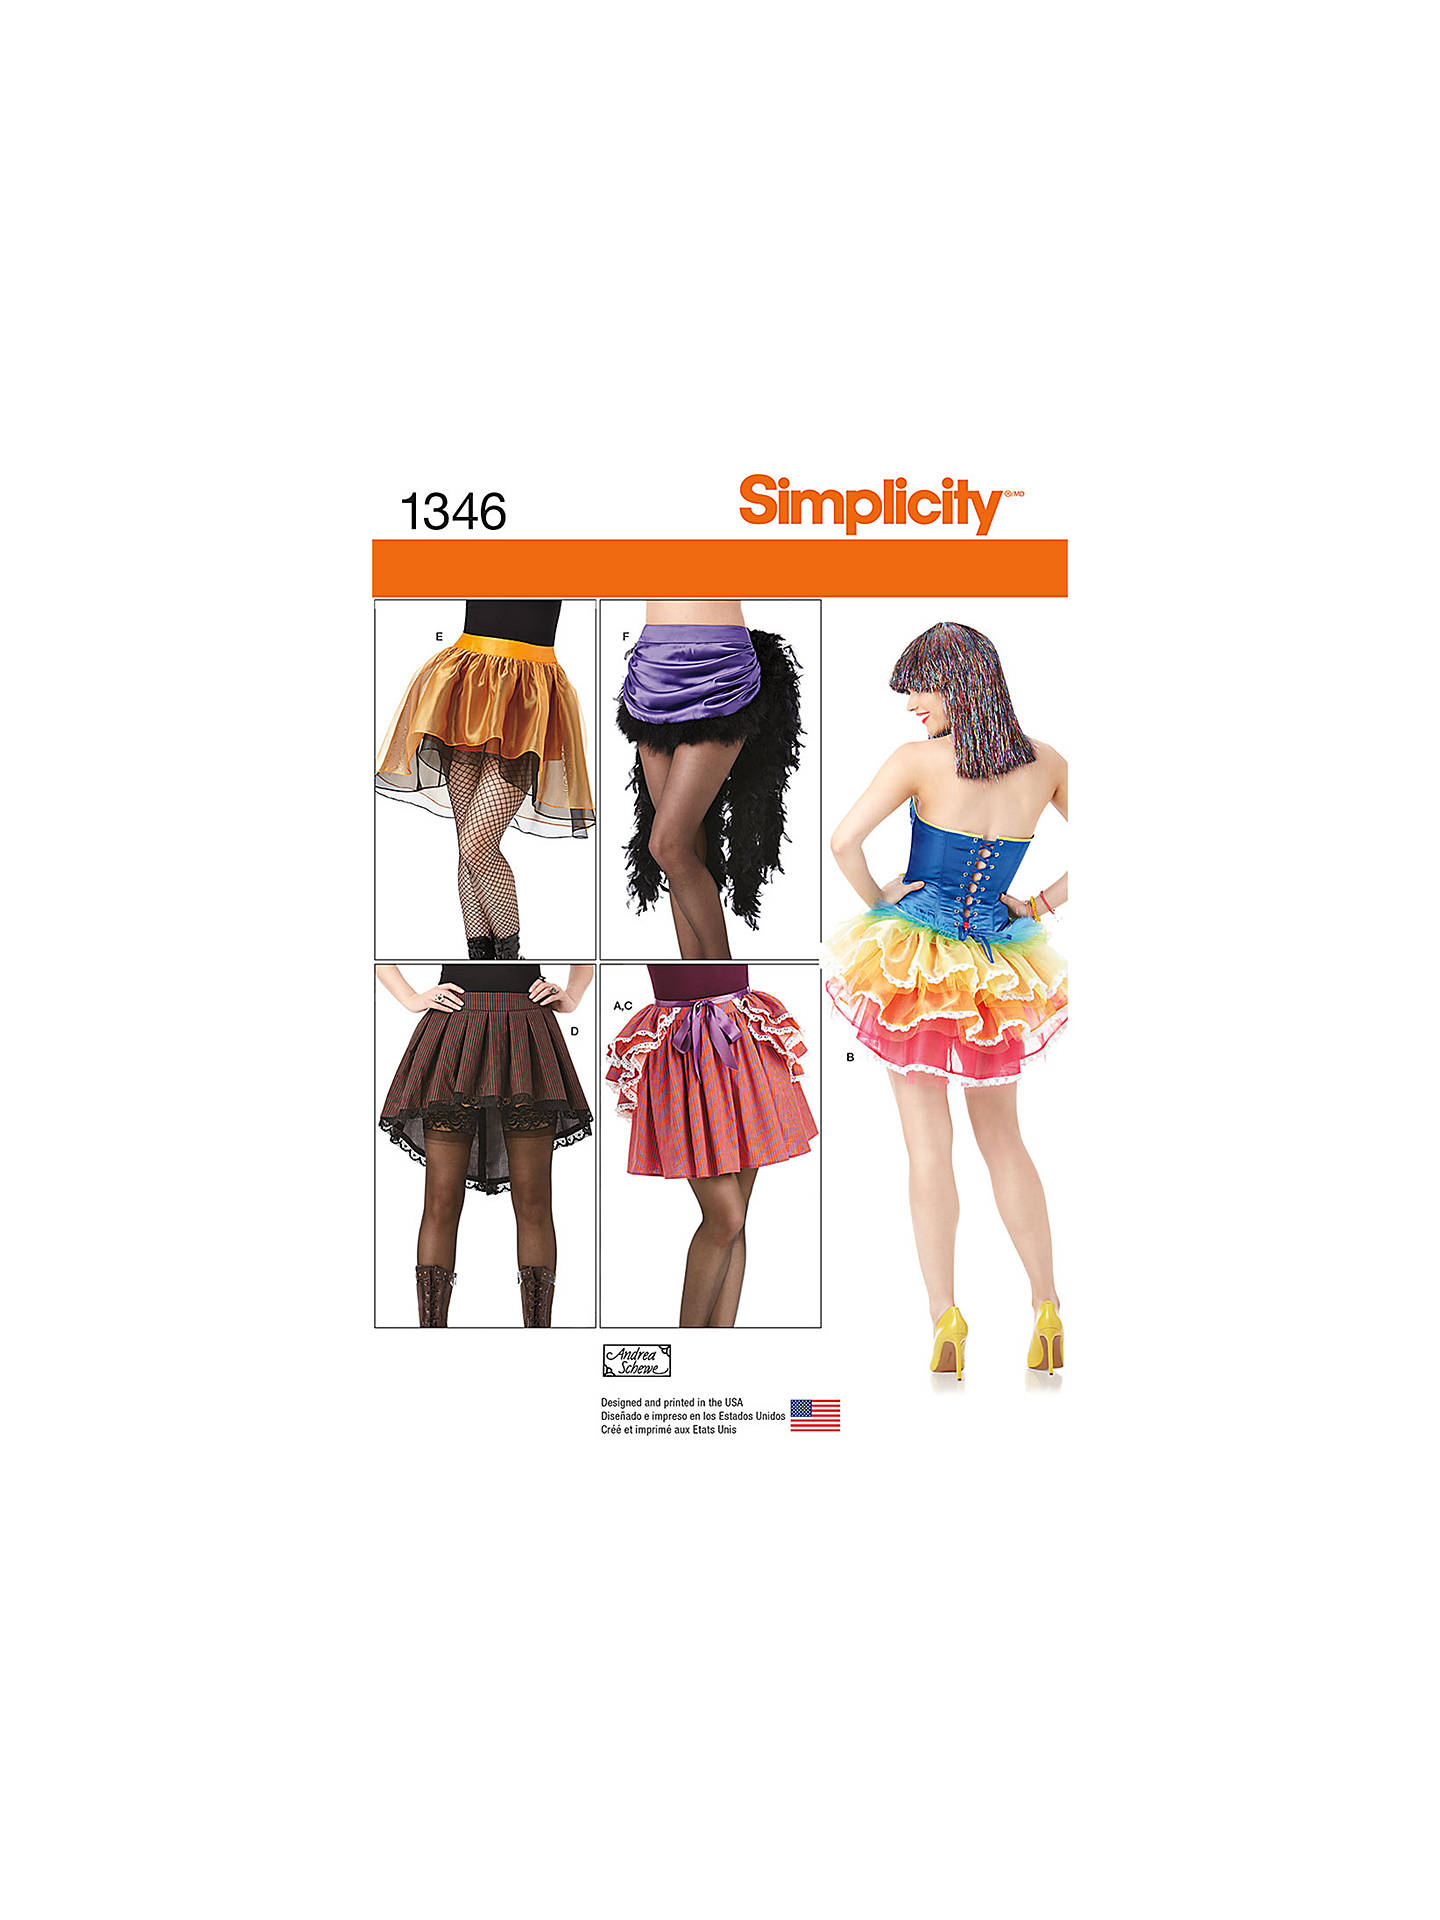 Simplicity Women\'s Costume Skirts & Bustles Sewing Patterns, 1346 at ...